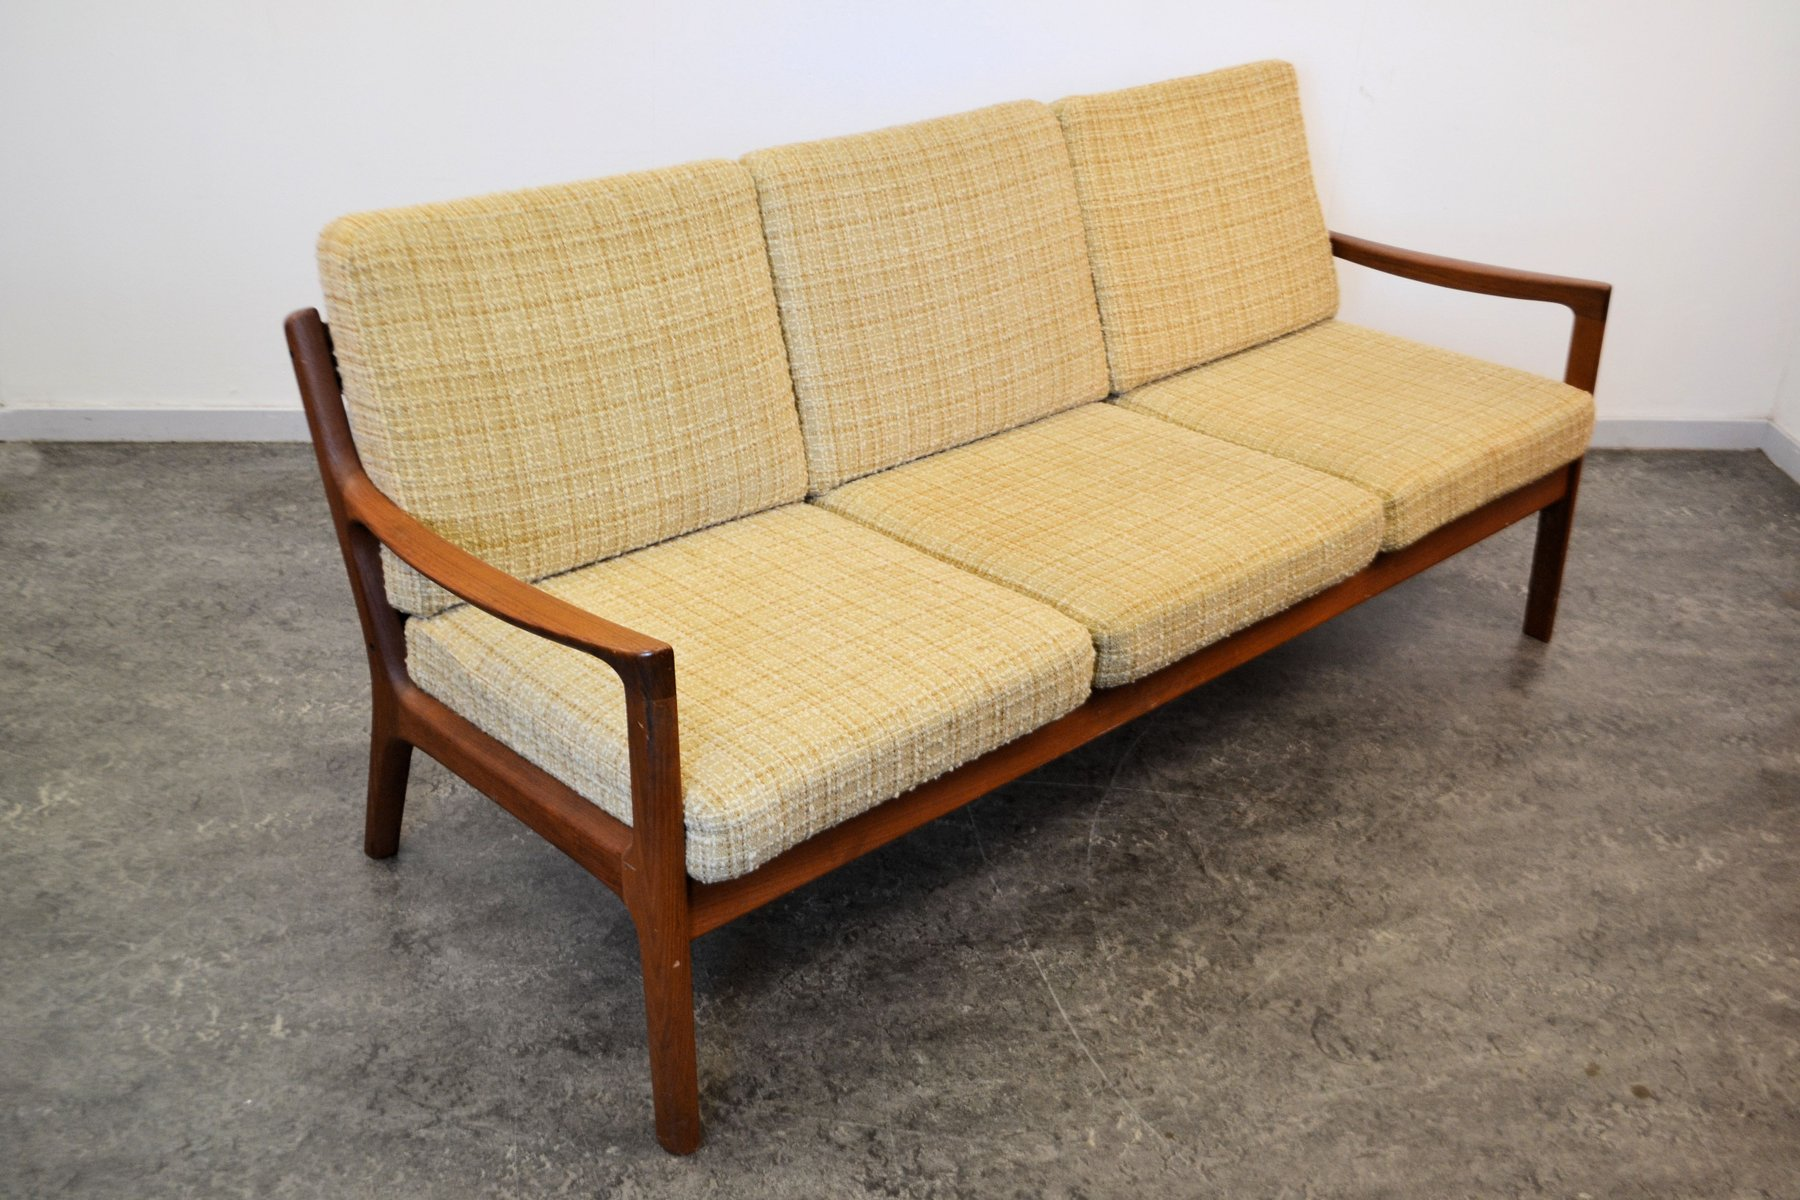 Sofa Dreams France Senator 3 Seater Sofa By Ole Wanscher For Cado 1960s For